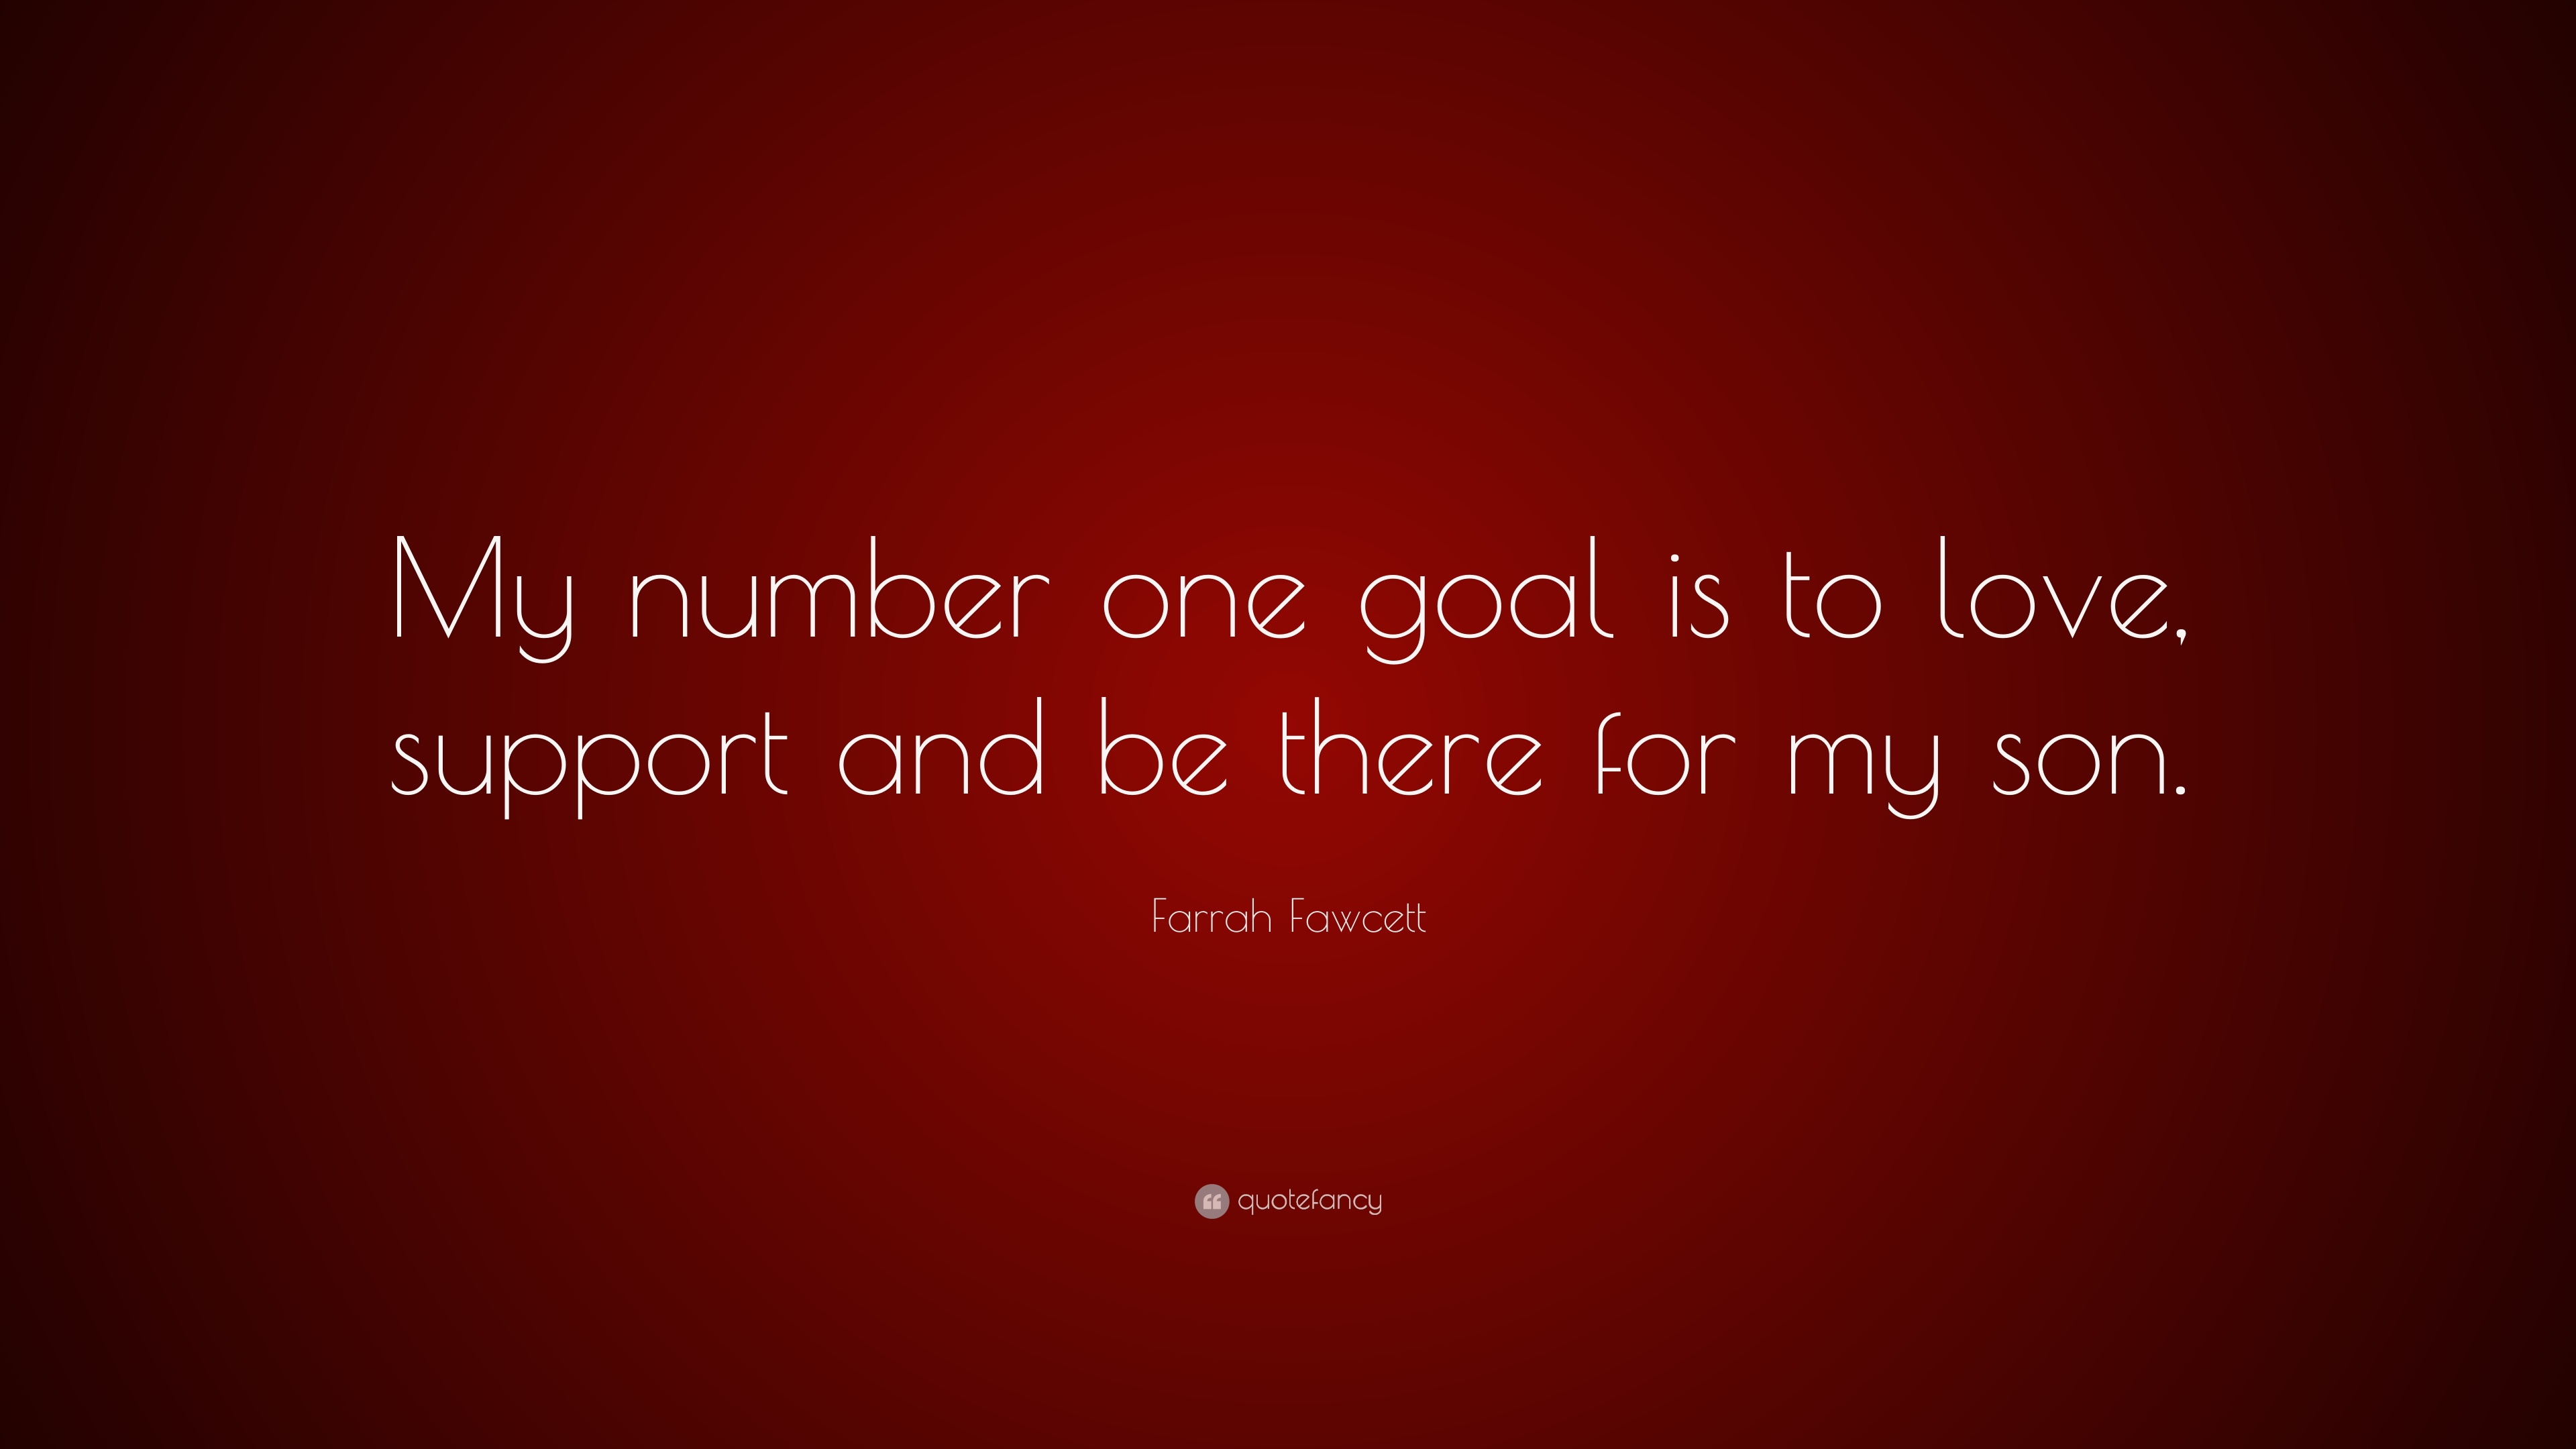 Farrah Fawcett Quote My Number One Goal Is To Love Support And Be